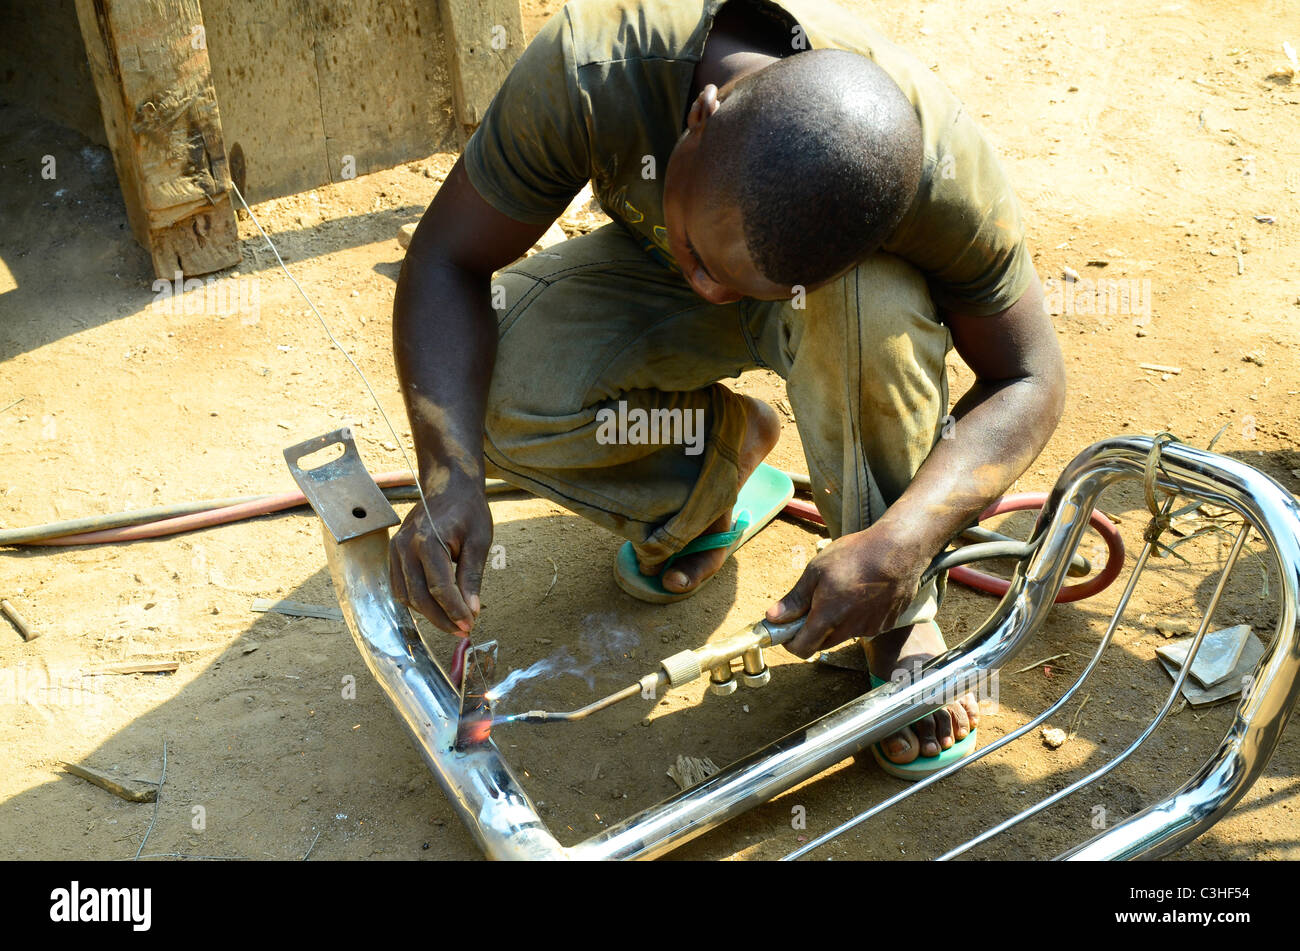 Democratic Republic of Congo in January 2011. - Stock Image